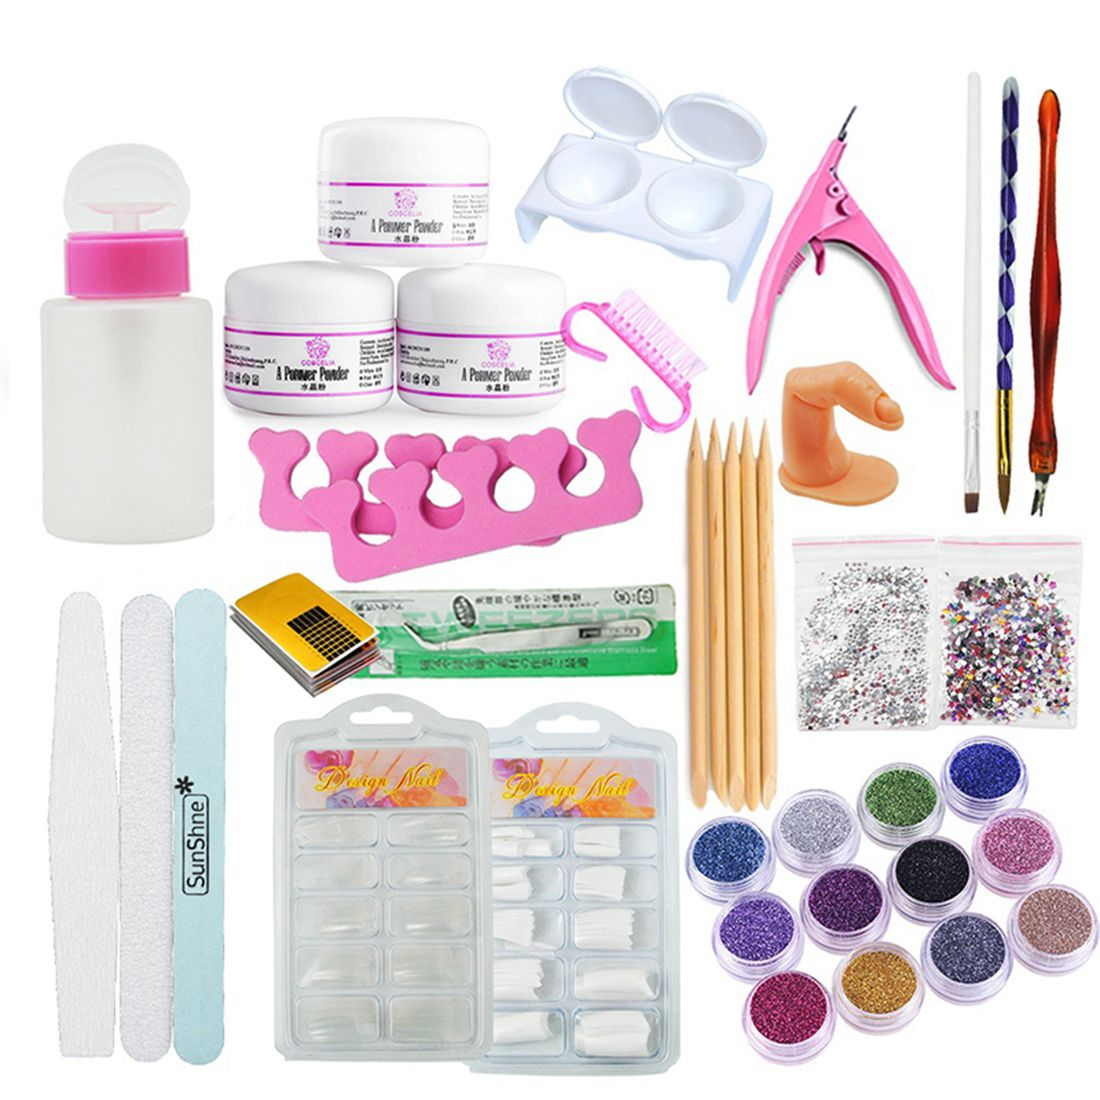 JEYL Hot Manicure Kit 19 Nails Nail Art Tips False Nails Sequins Decor Powder White Light Pink Manicure Set Kit (Size: Acrylic 2016 cartoon design nail art manicure tips water transfer nail stickers paradise vacation desgins nails wraps collections decor